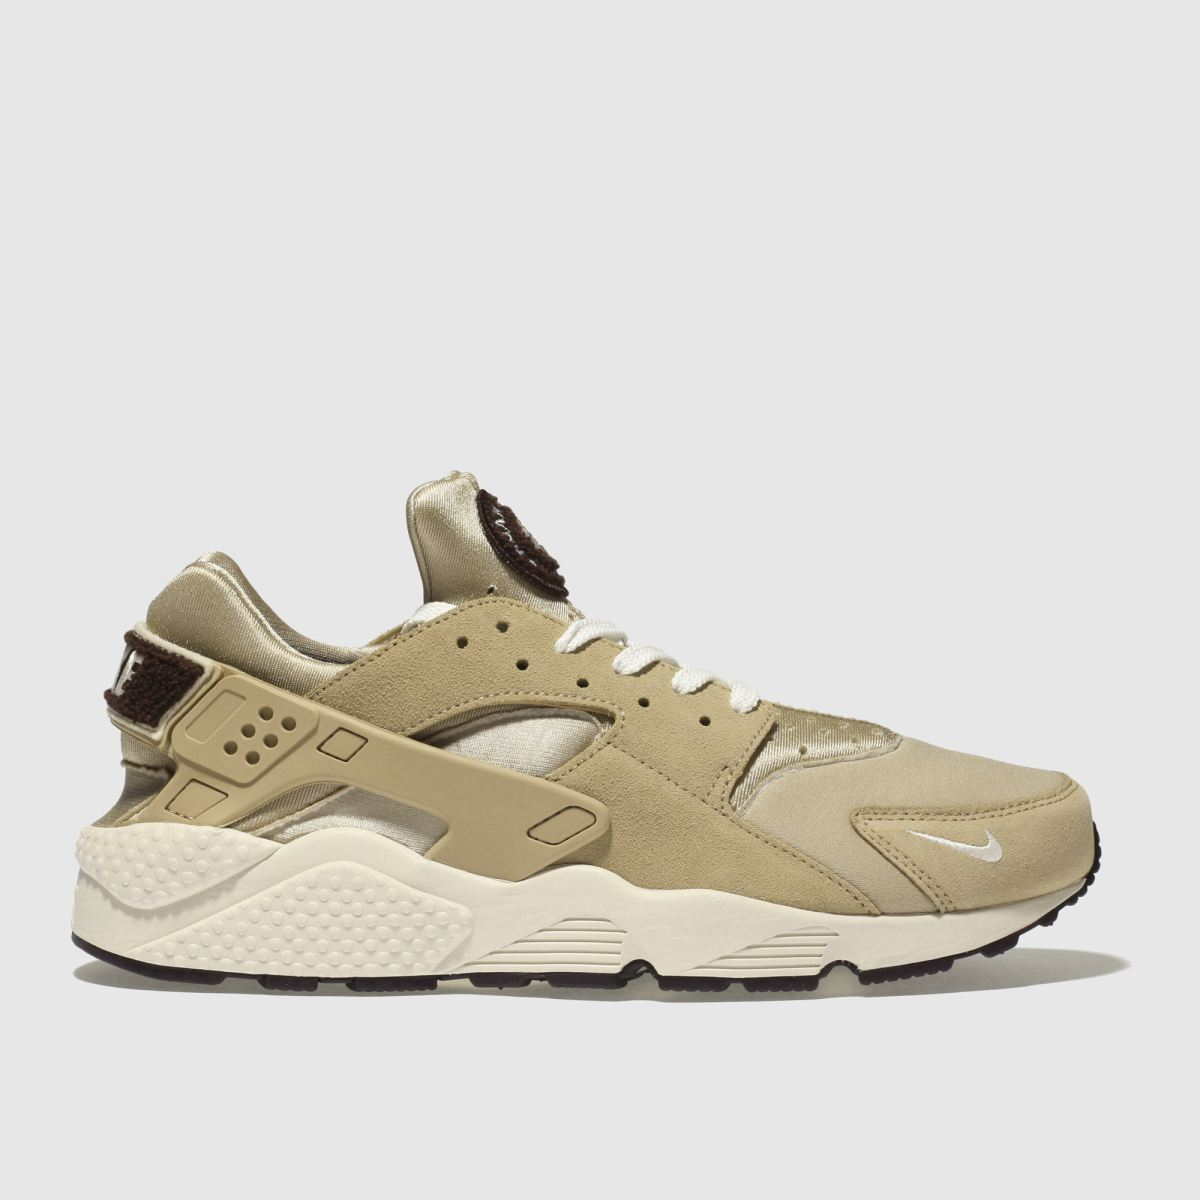 Nike Tan Air Huarache Run Premium Trainers